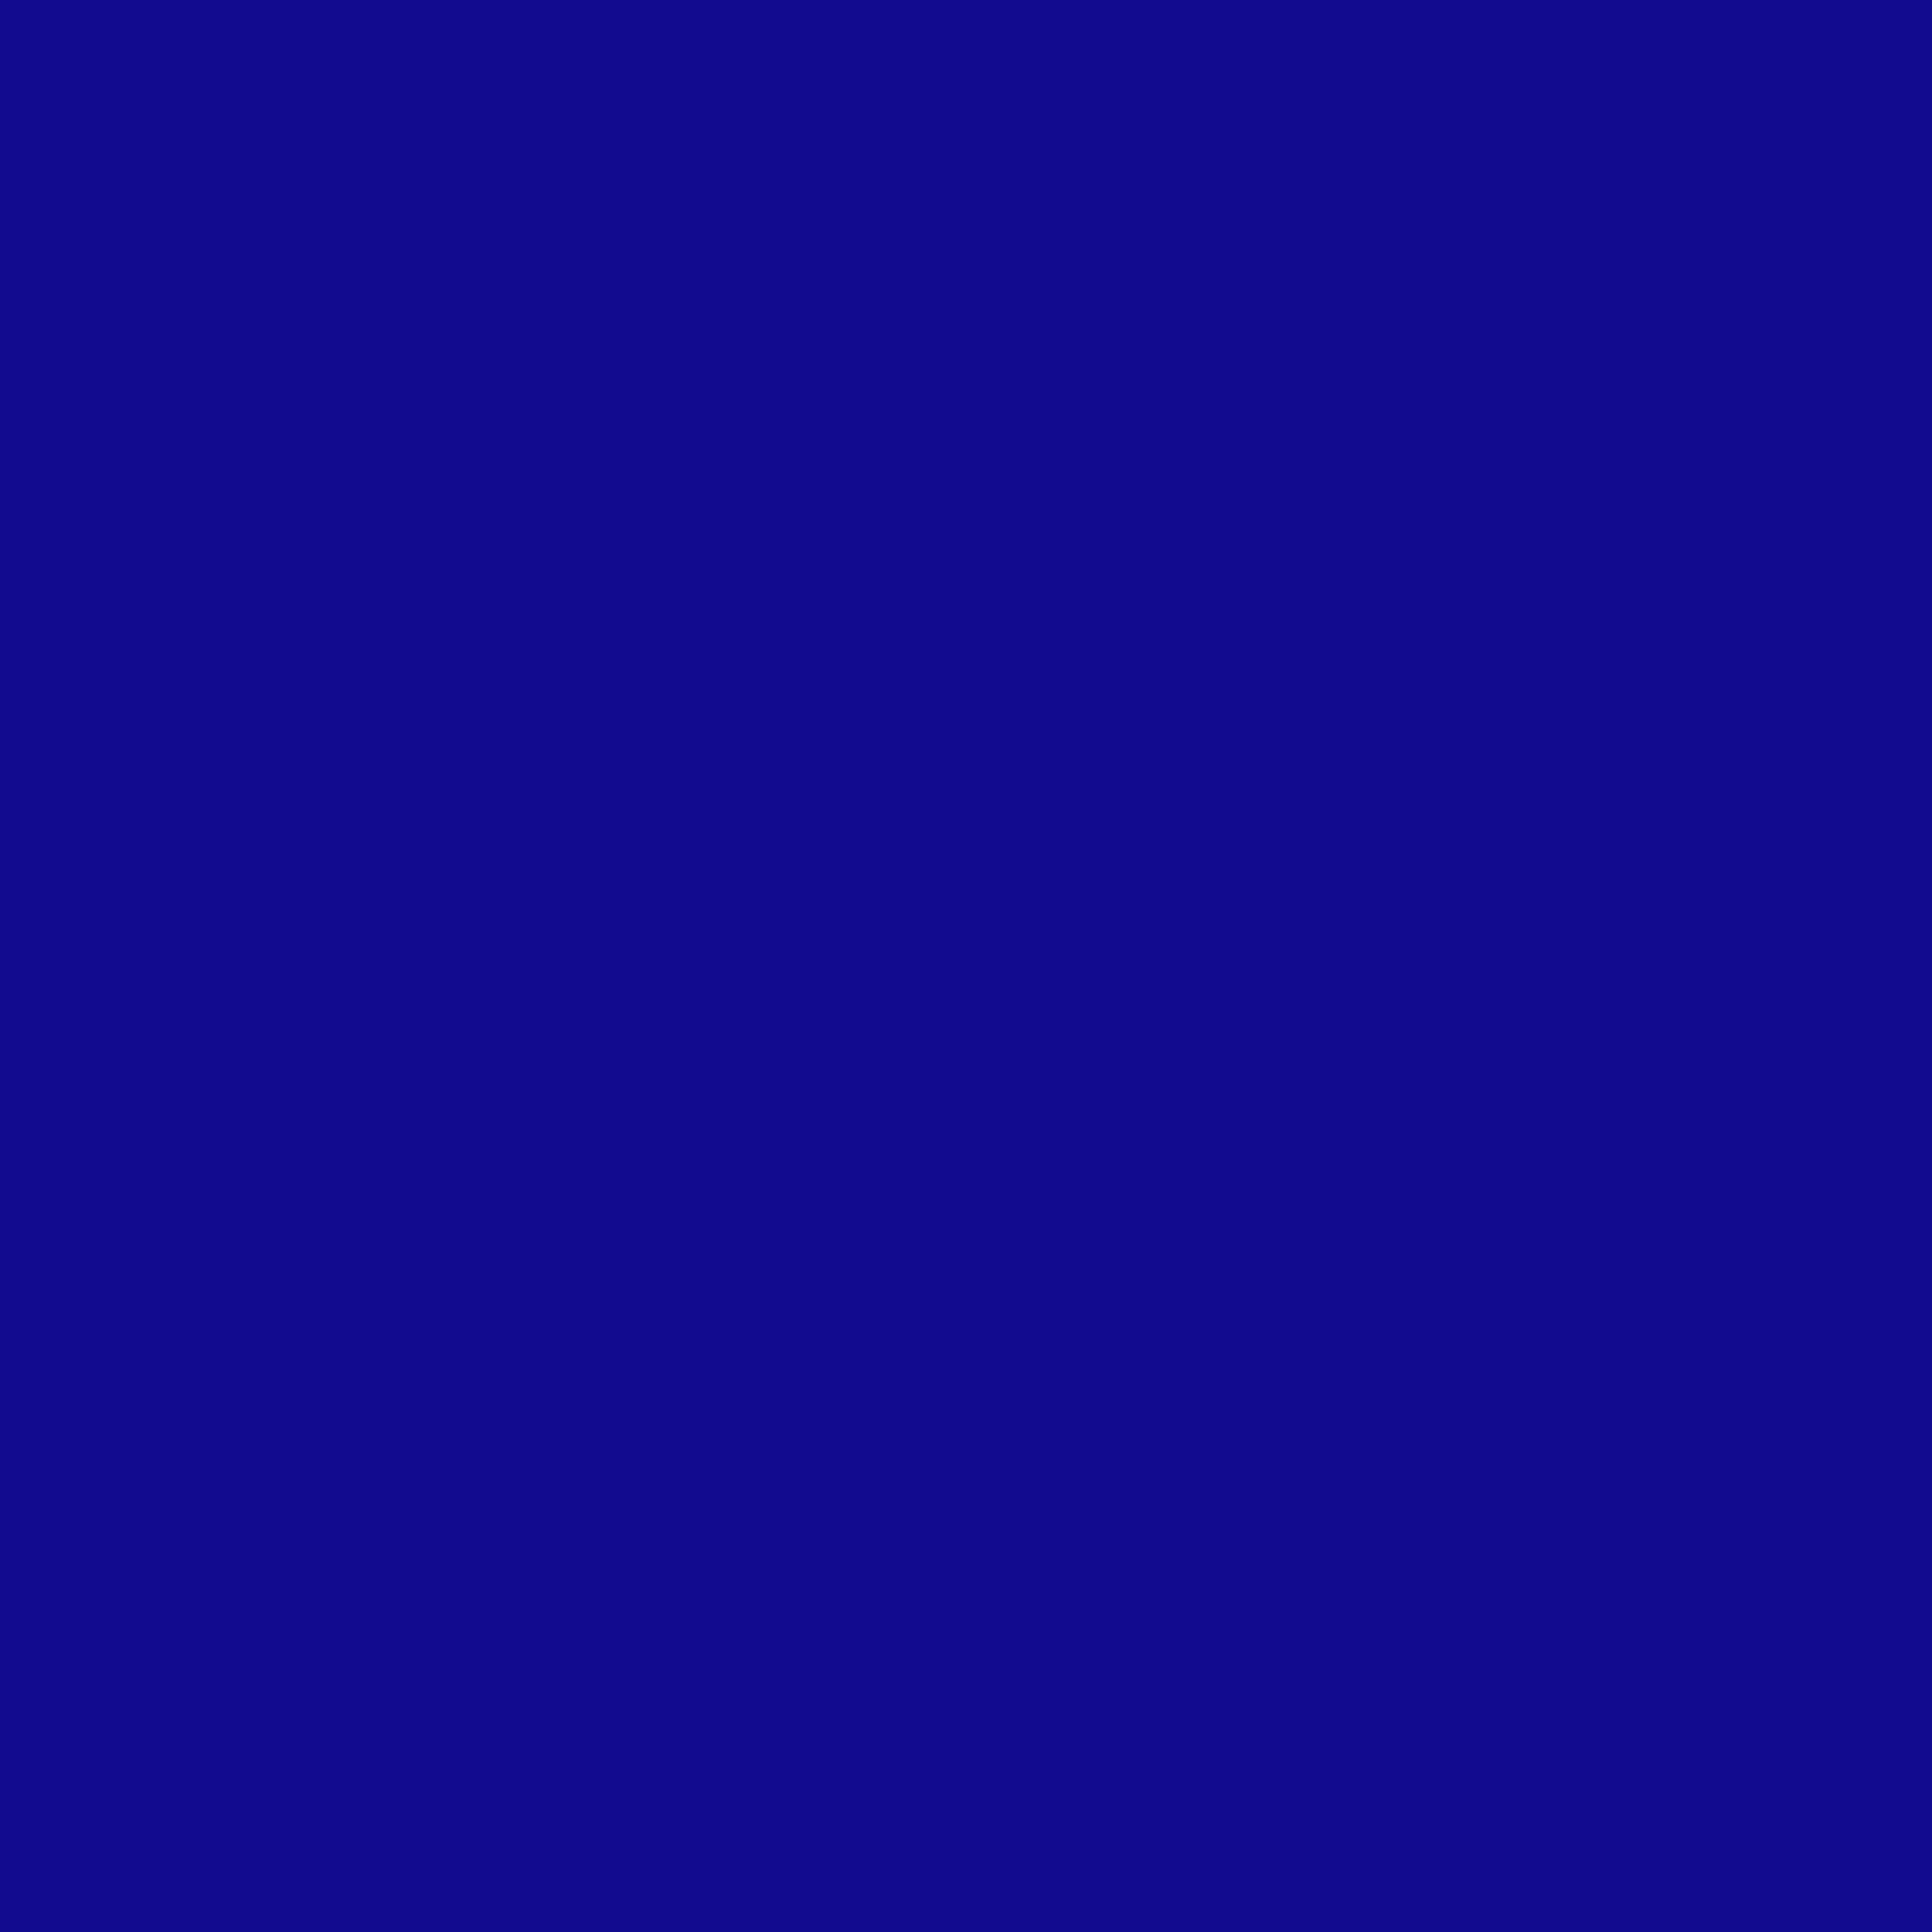 2732x2732 Ultramarine Solid Color Background